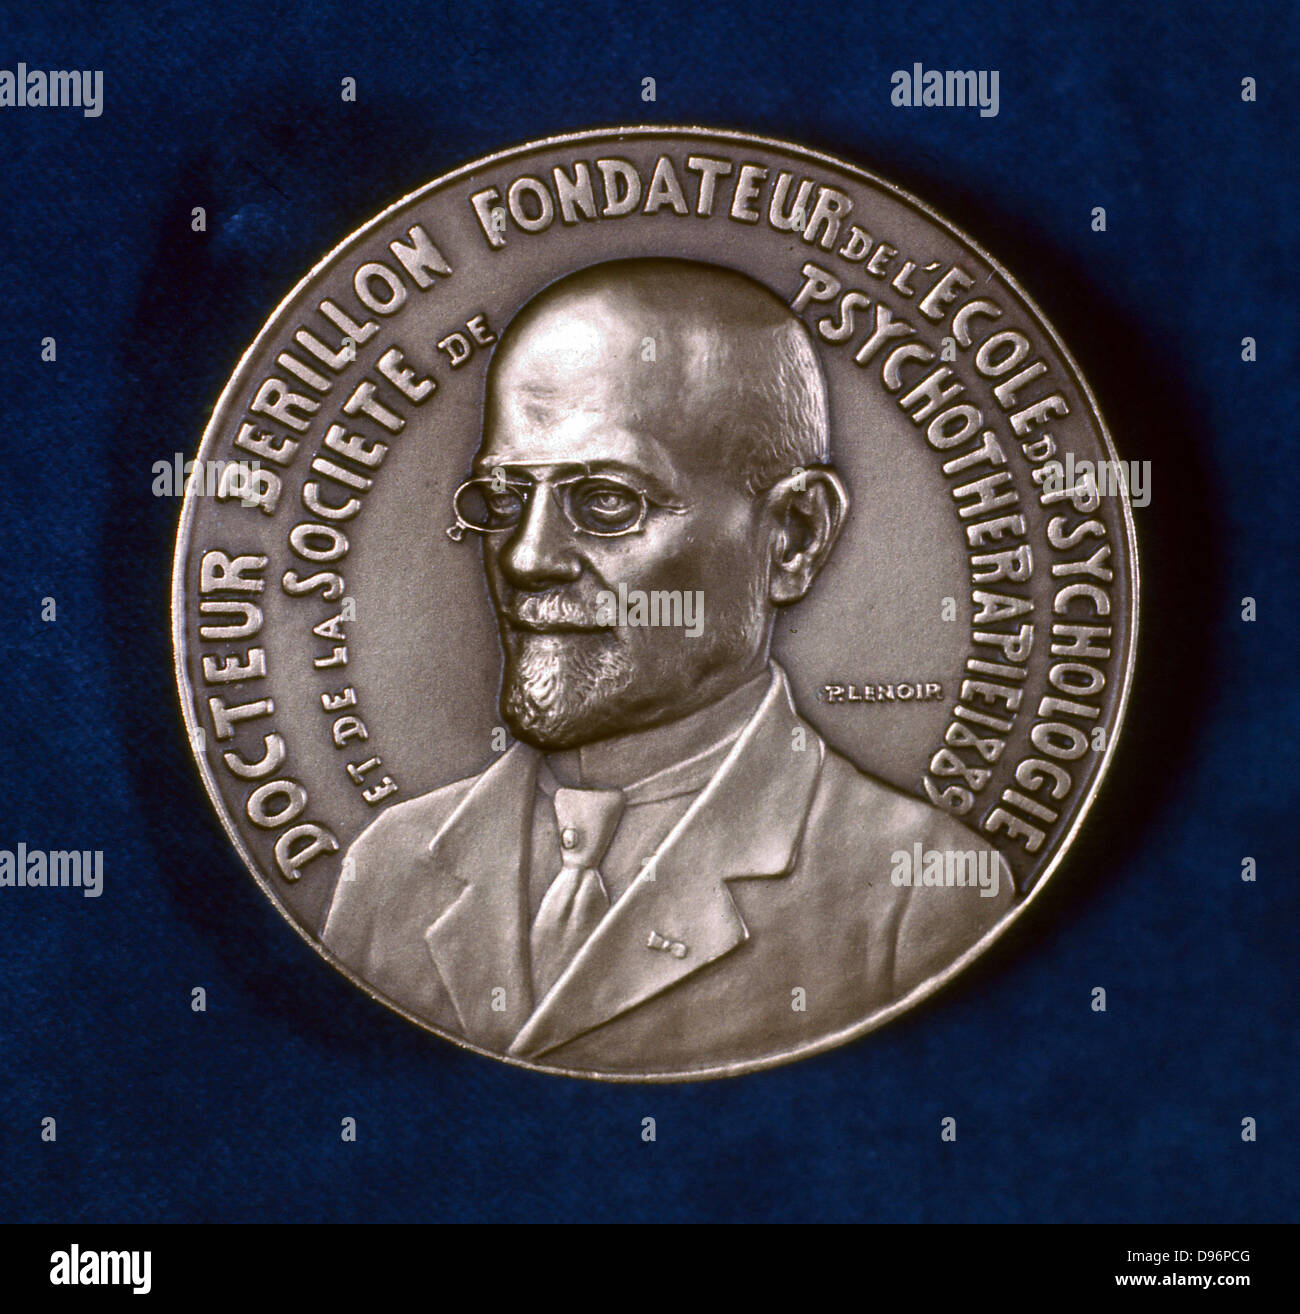 Edgar Berillon, French psychologist, 1929. Obverse of a medal struck to commemorate the 40th anniversary of Berillon's - Stock Image